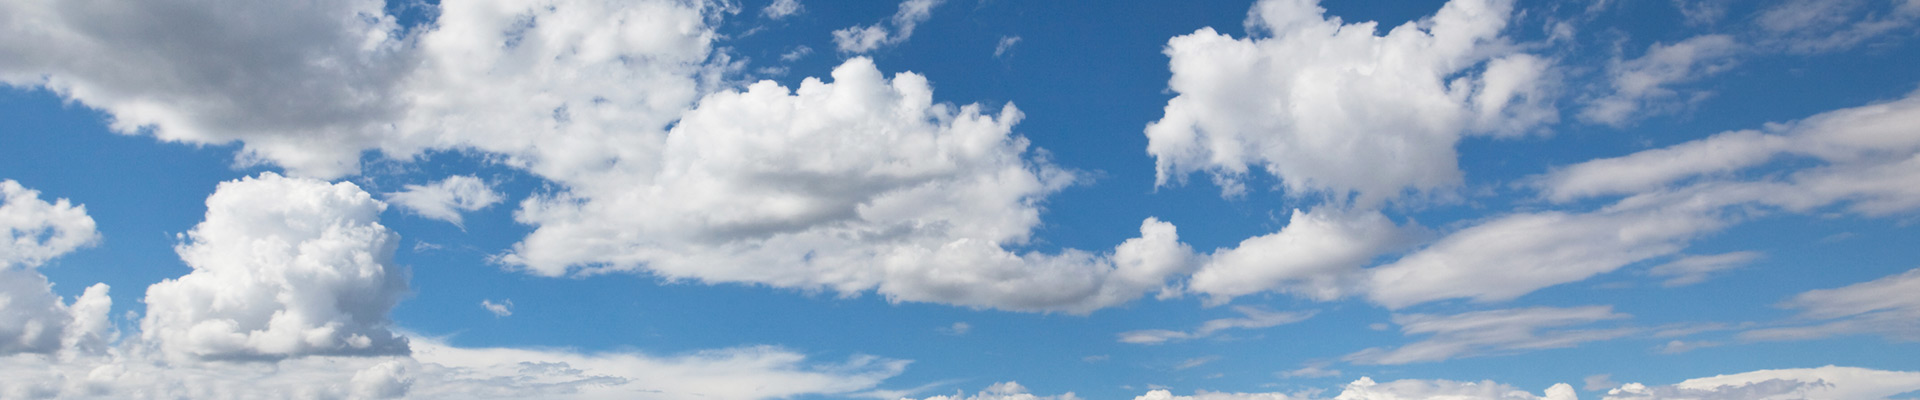 blue-sky-with-clouds